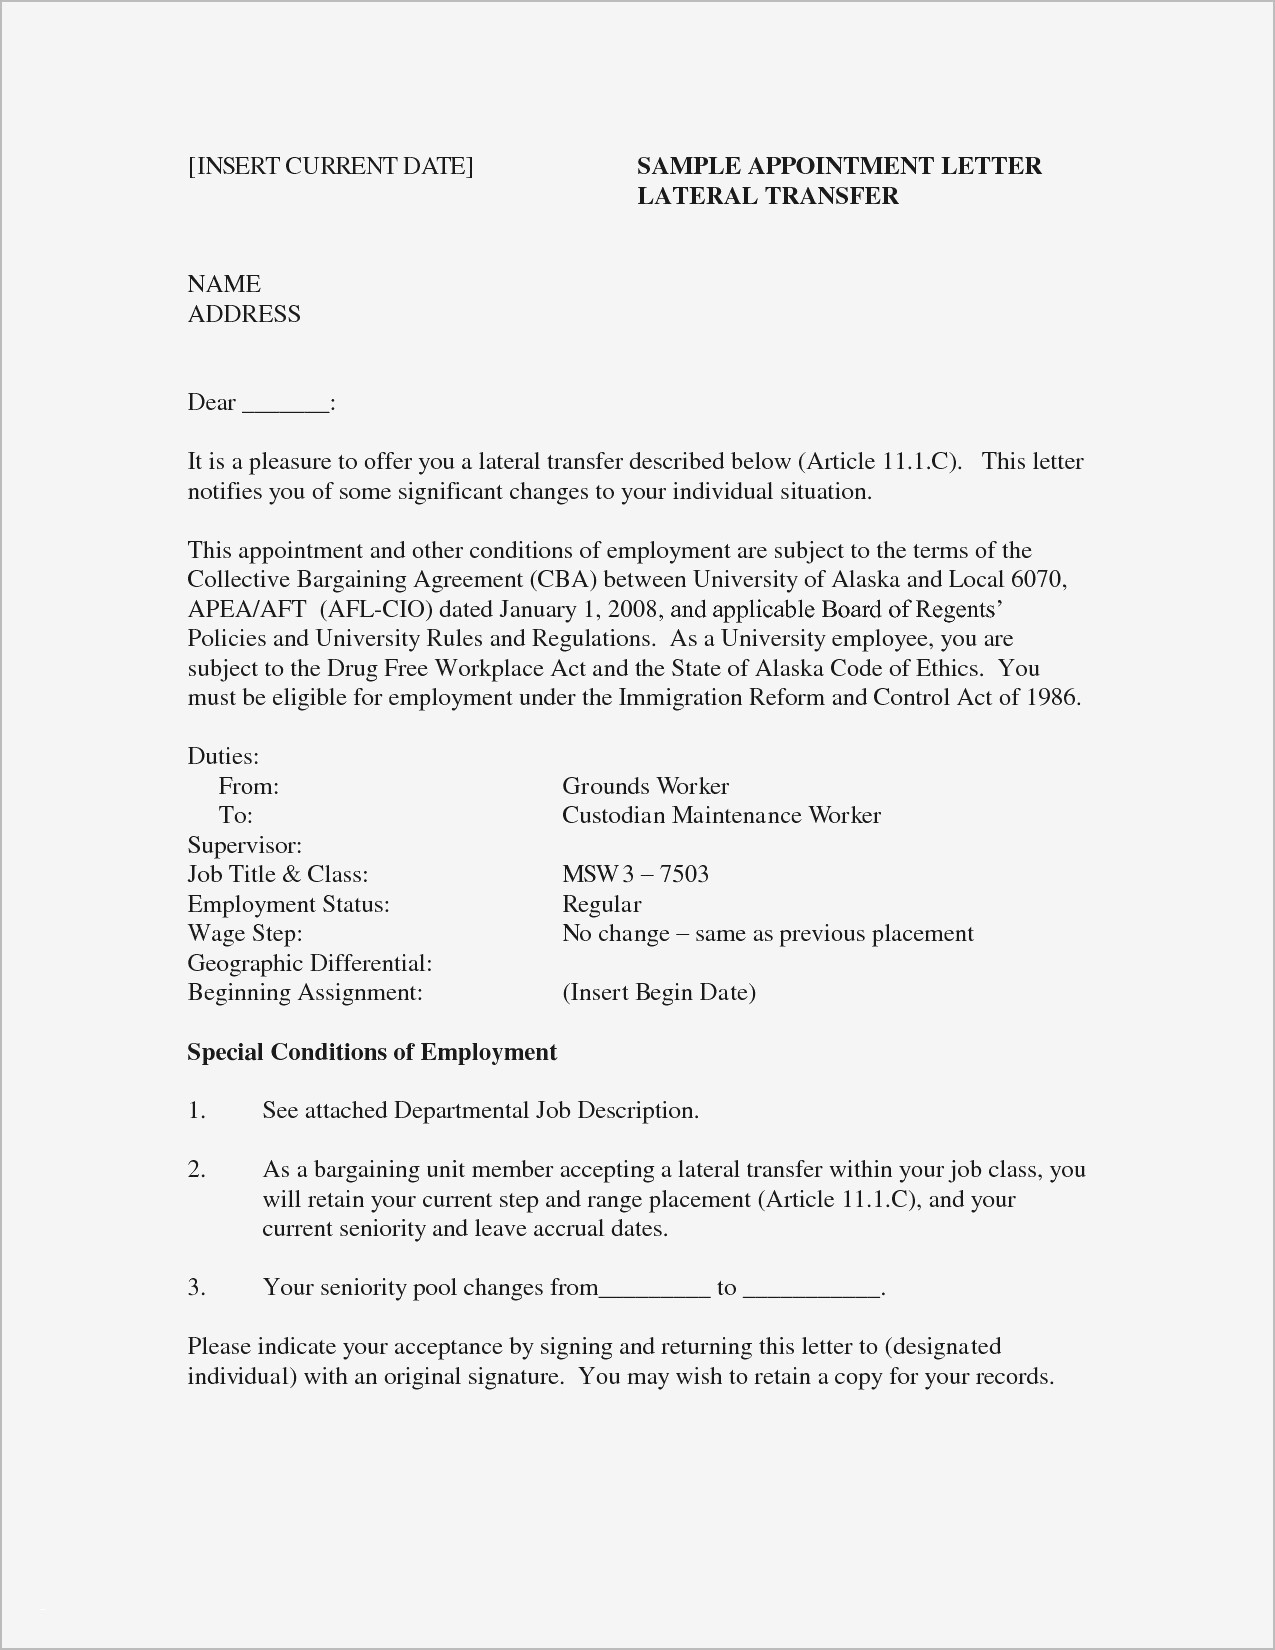 job title in resume example-Writing A Resume Save Job Resumes Examples New Fresh Resume 0d Resume For Substitute 11-o